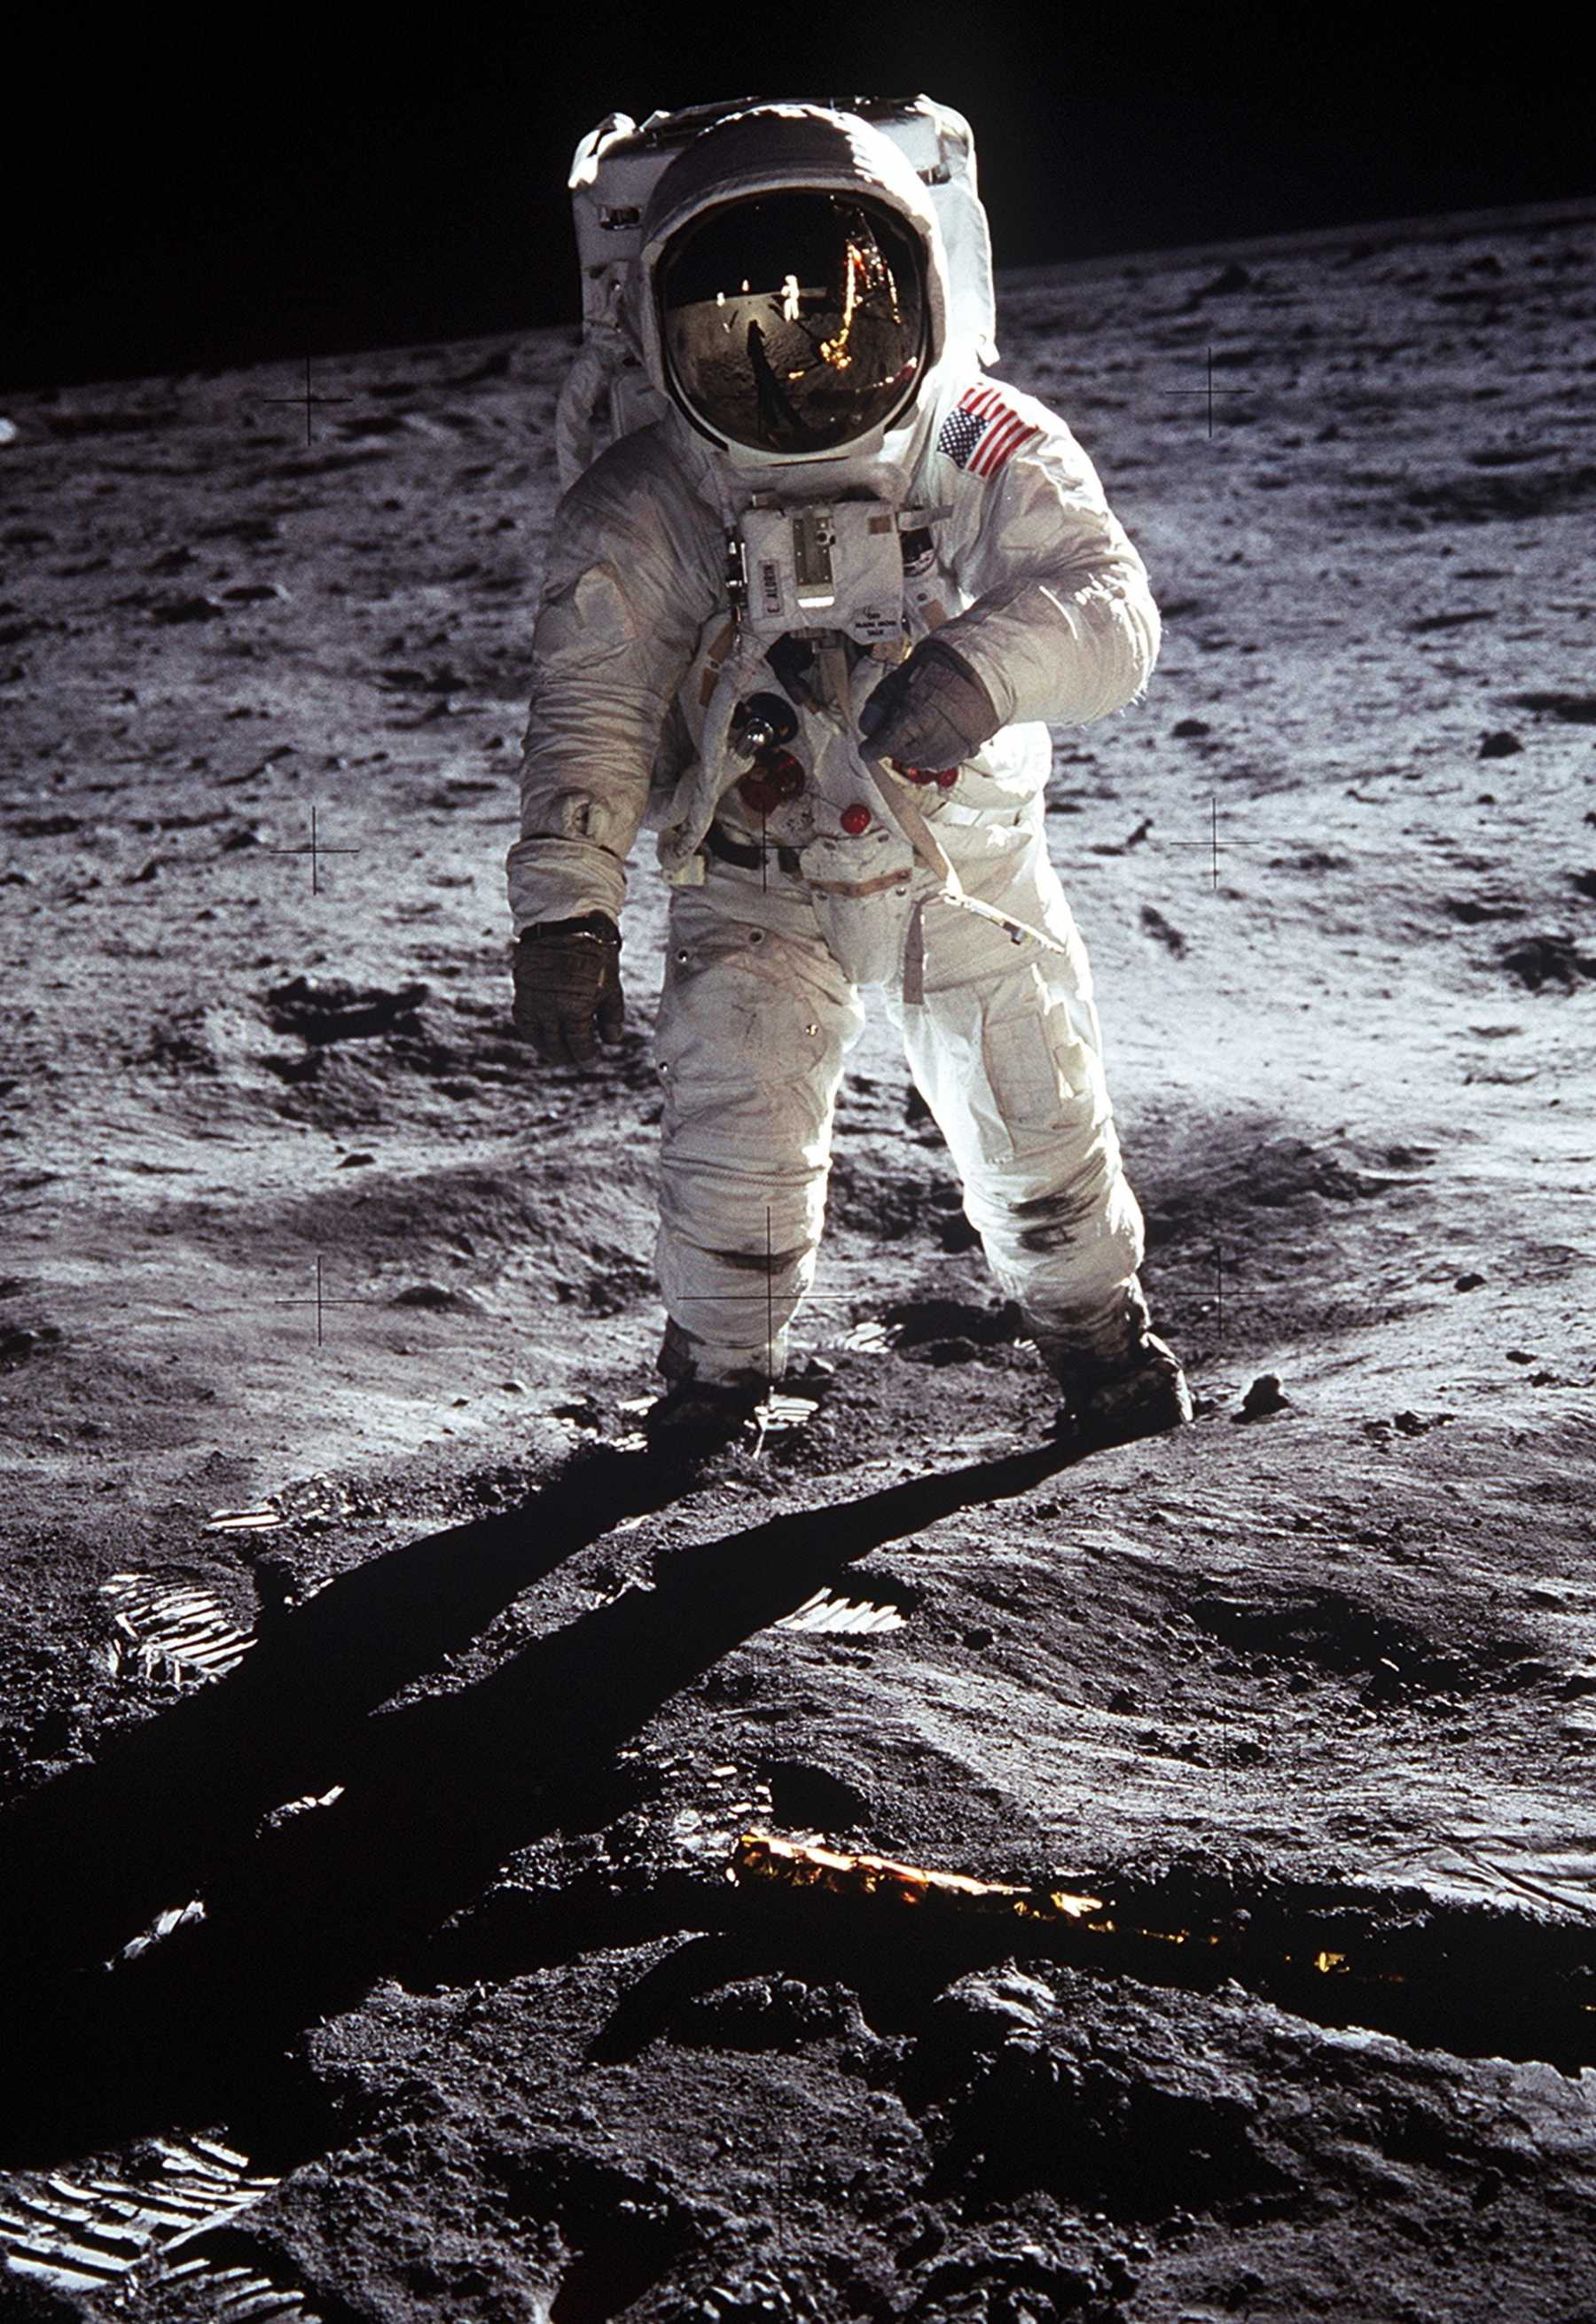 Kickstarter Aims To Raise Funds For Conserving Neil Armstrong's Suit | Neil Armstrong